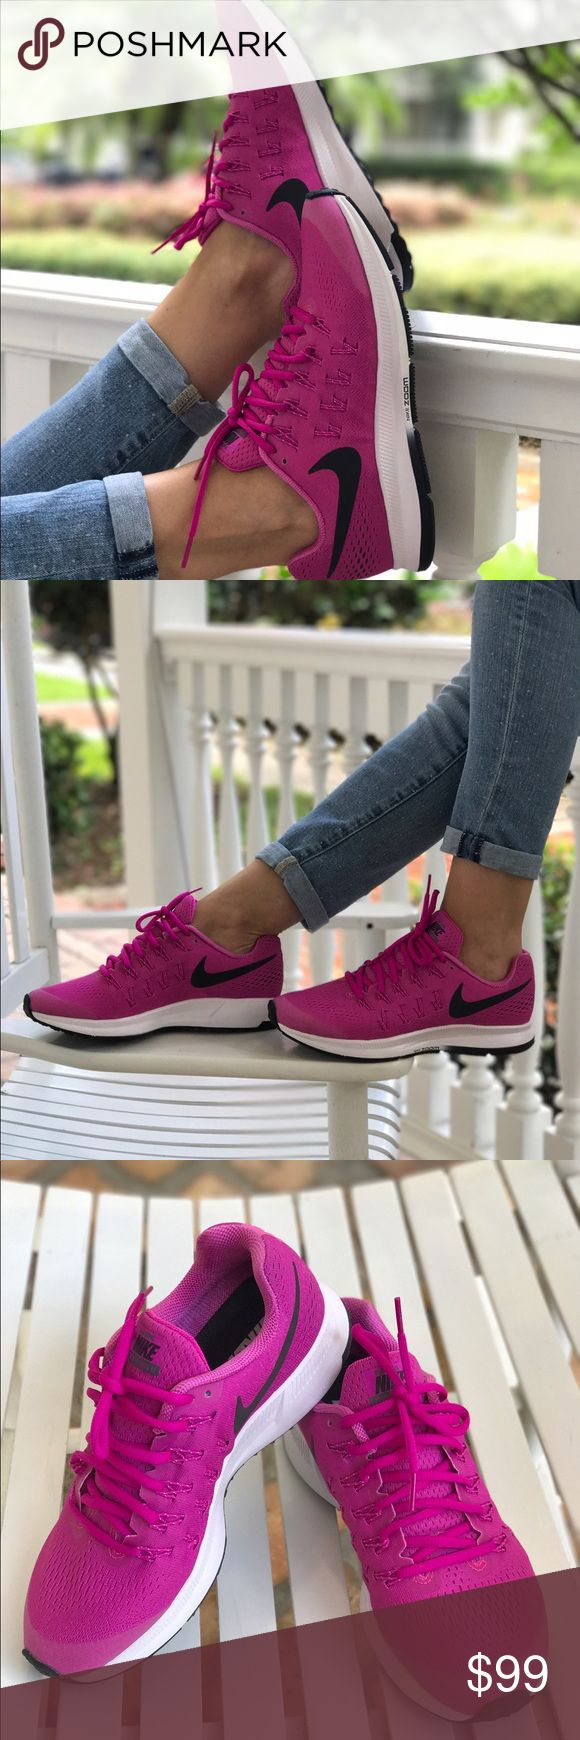 NWT Nike ID Zoom Pegasus 33 W, size 8,5 Brand new, no box. Price is firm. No trades. Upper: Engineered mesh with inner sleeve, Flywire cord based lacing. Midsole: Compression molded EVA foam, heel and forefoot Zoom Air bags. Outsole:Hard-wearing carbon rubber throughout. Nike Shoes Sneakers